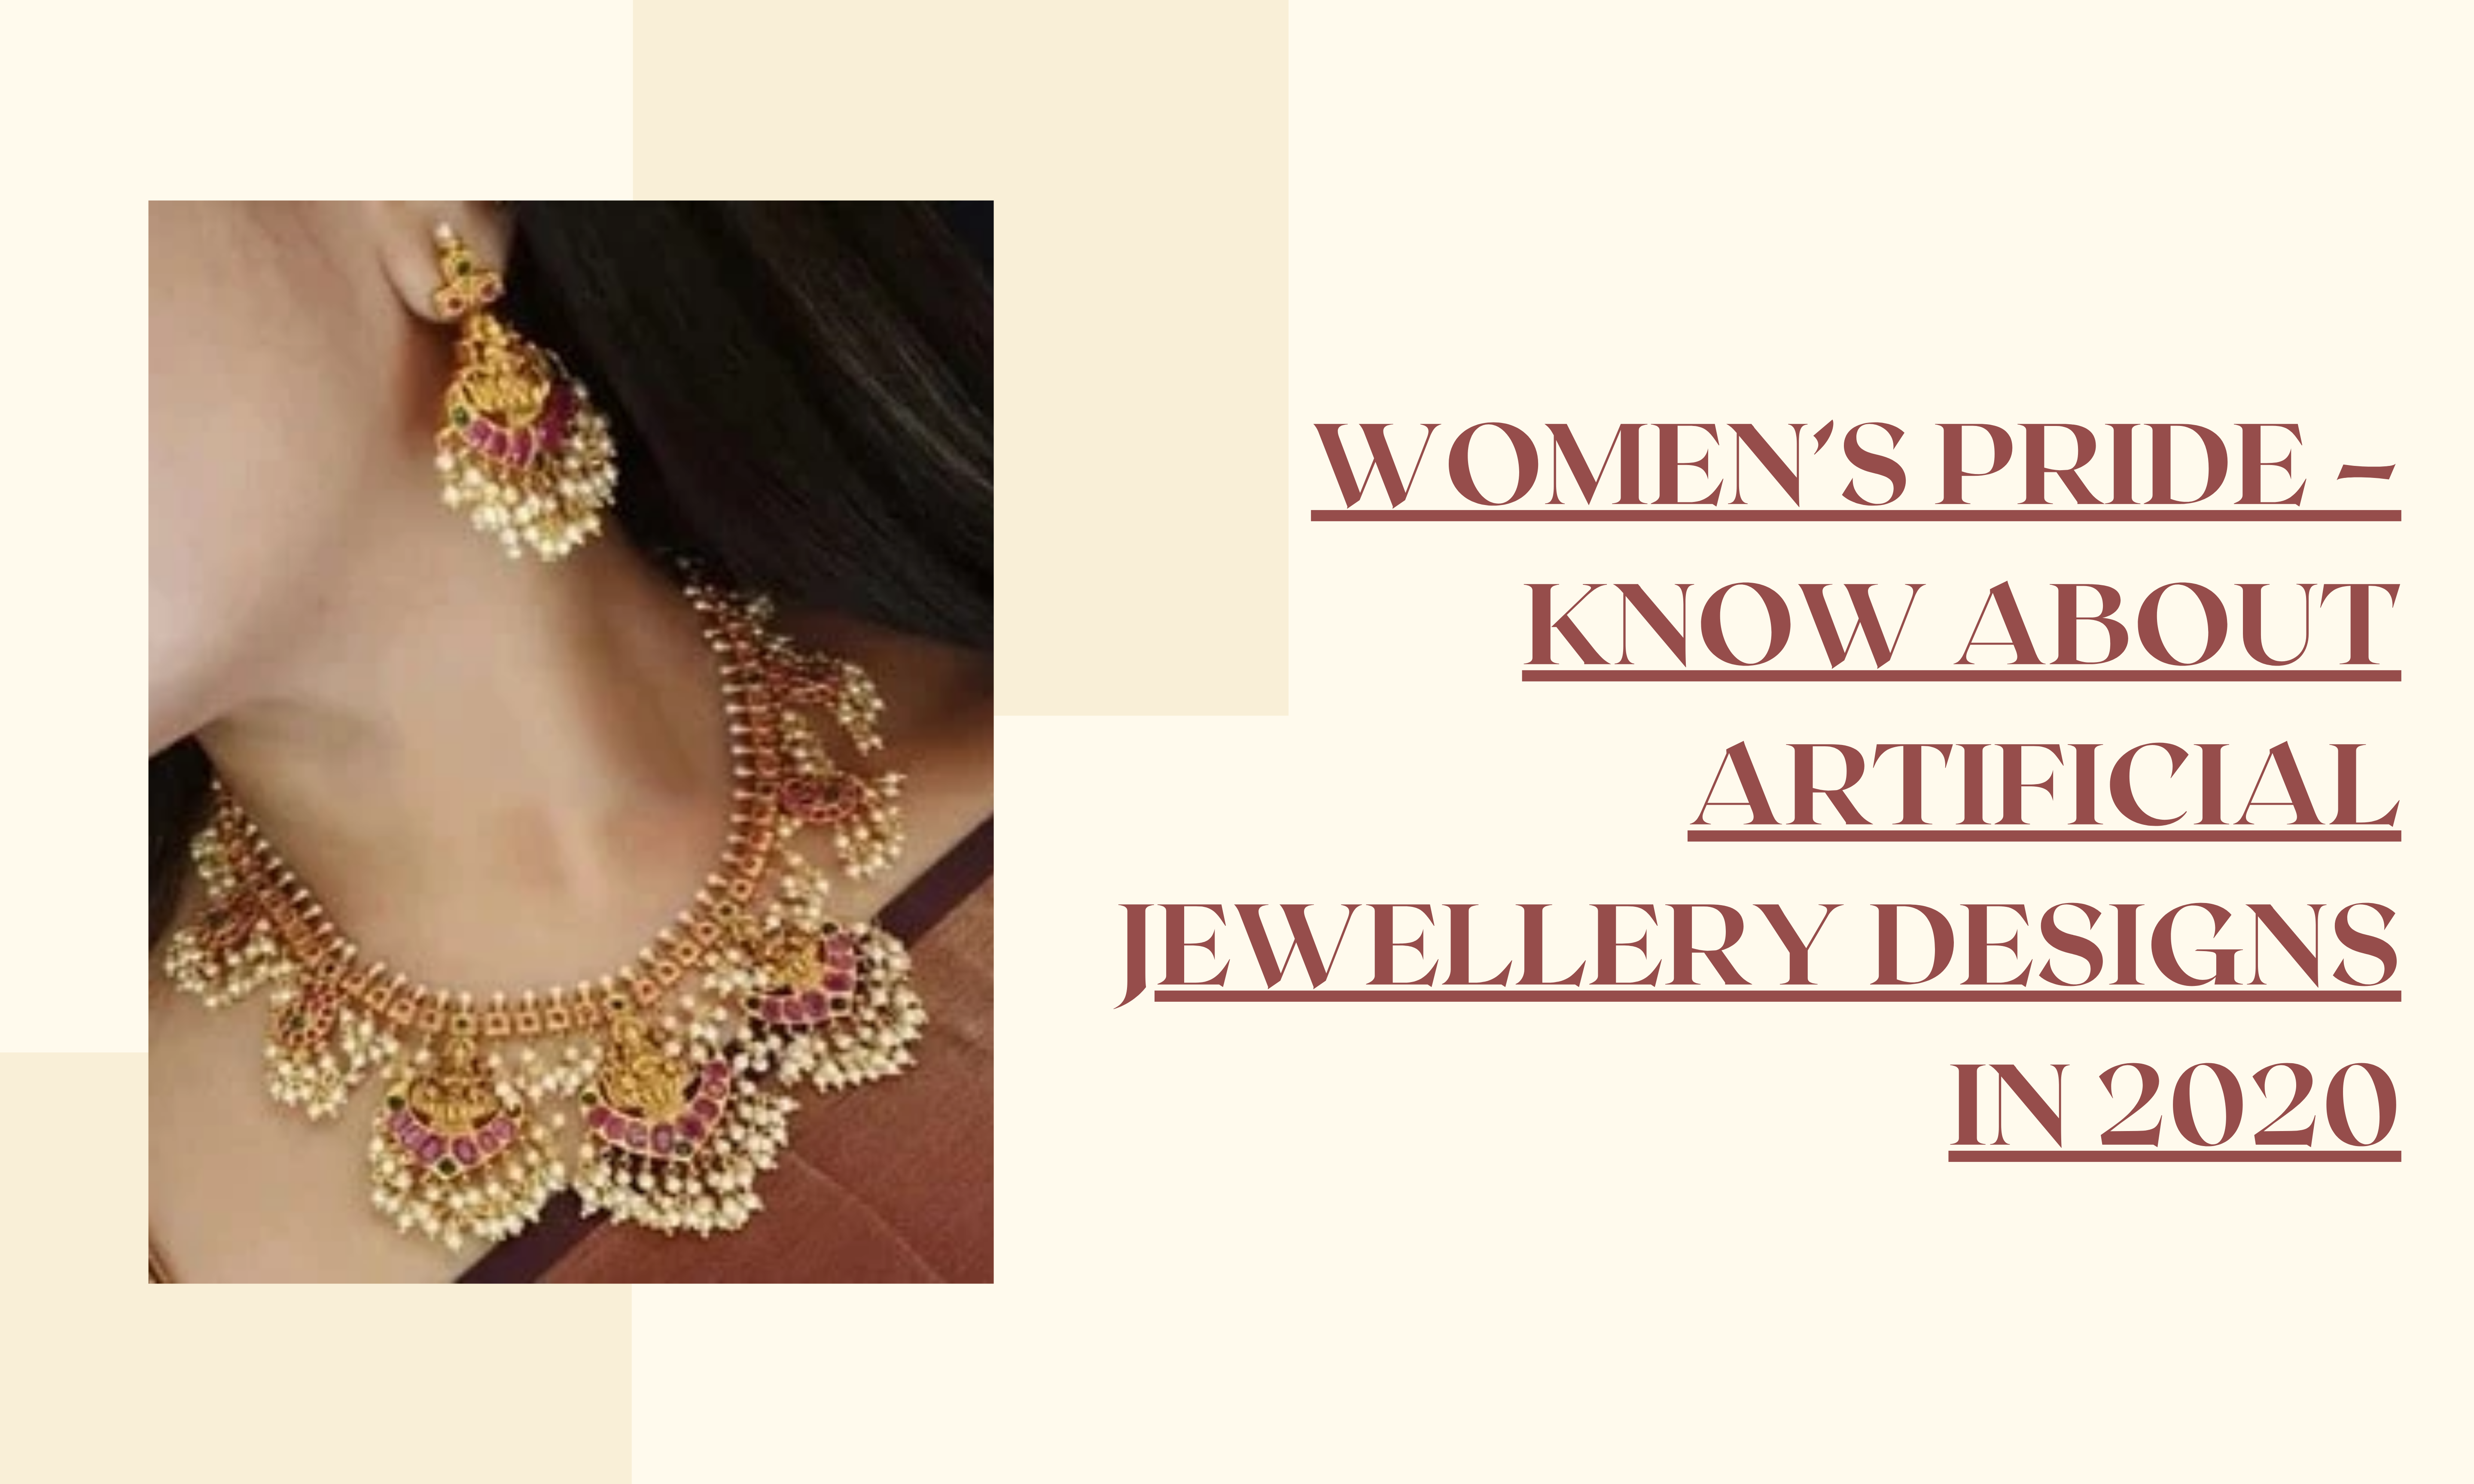 Women's pride – Know About Artificial Jewellery Designs in 2020